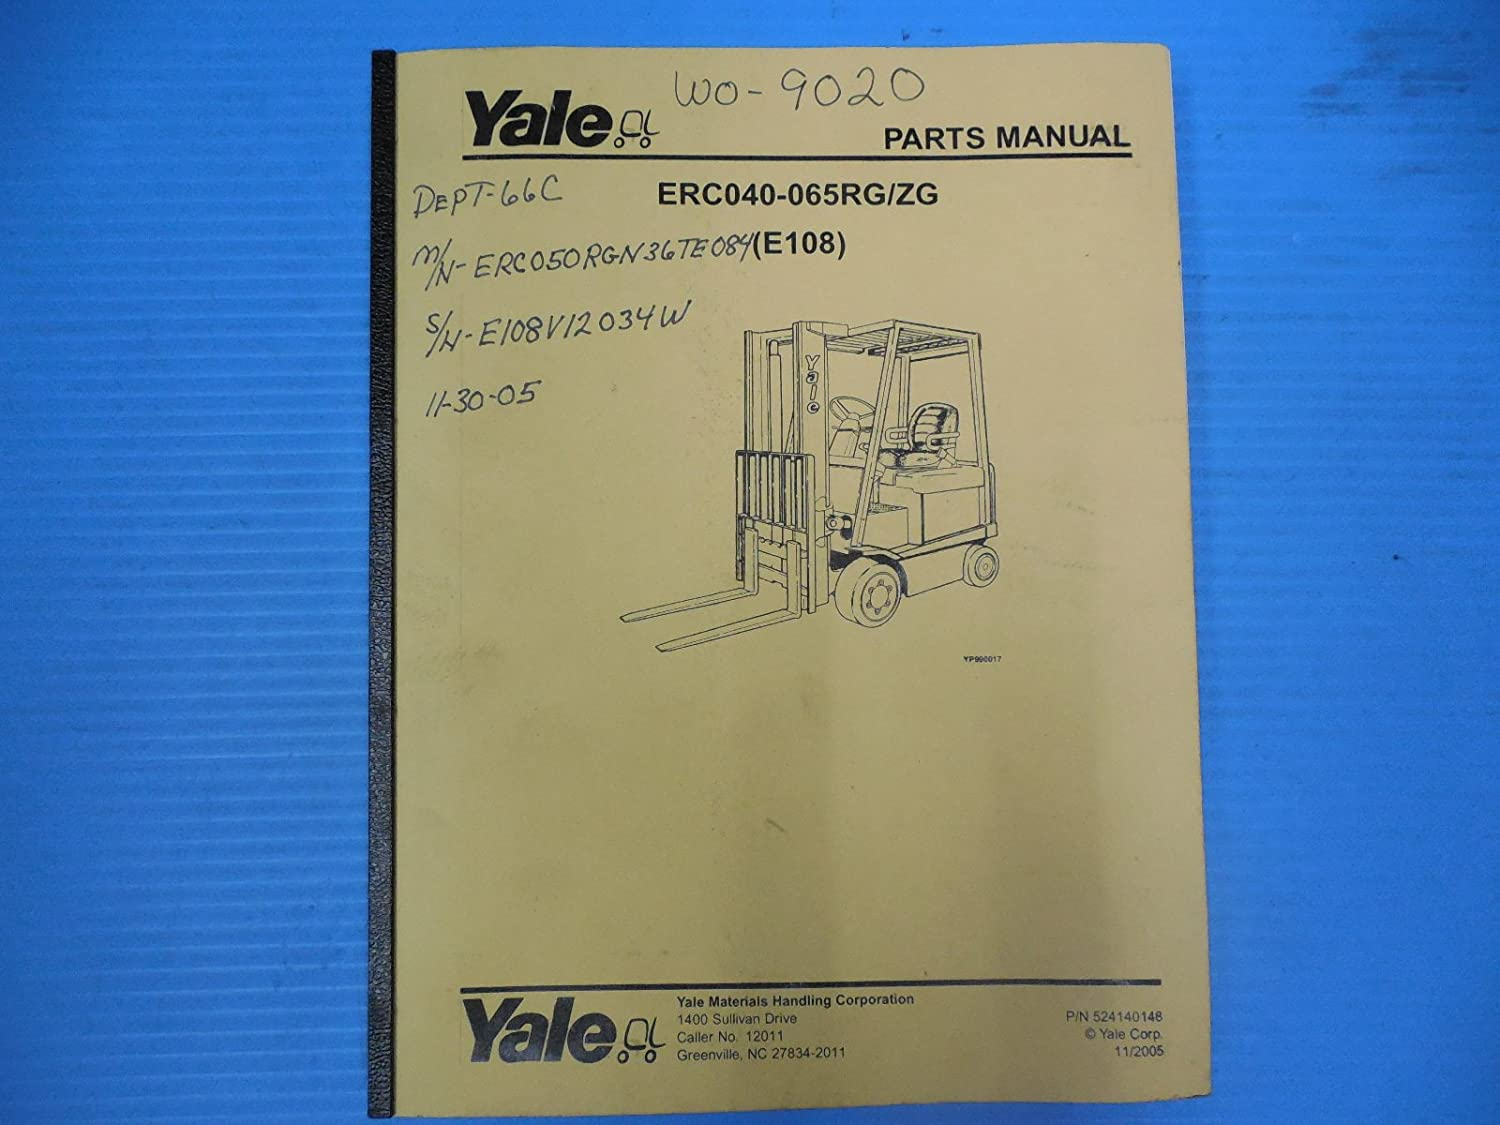 Wiring Yale Schematic Fork Lift Erco3aan Electrical Diagrams Diagram Glc Erc050 Explained Electric